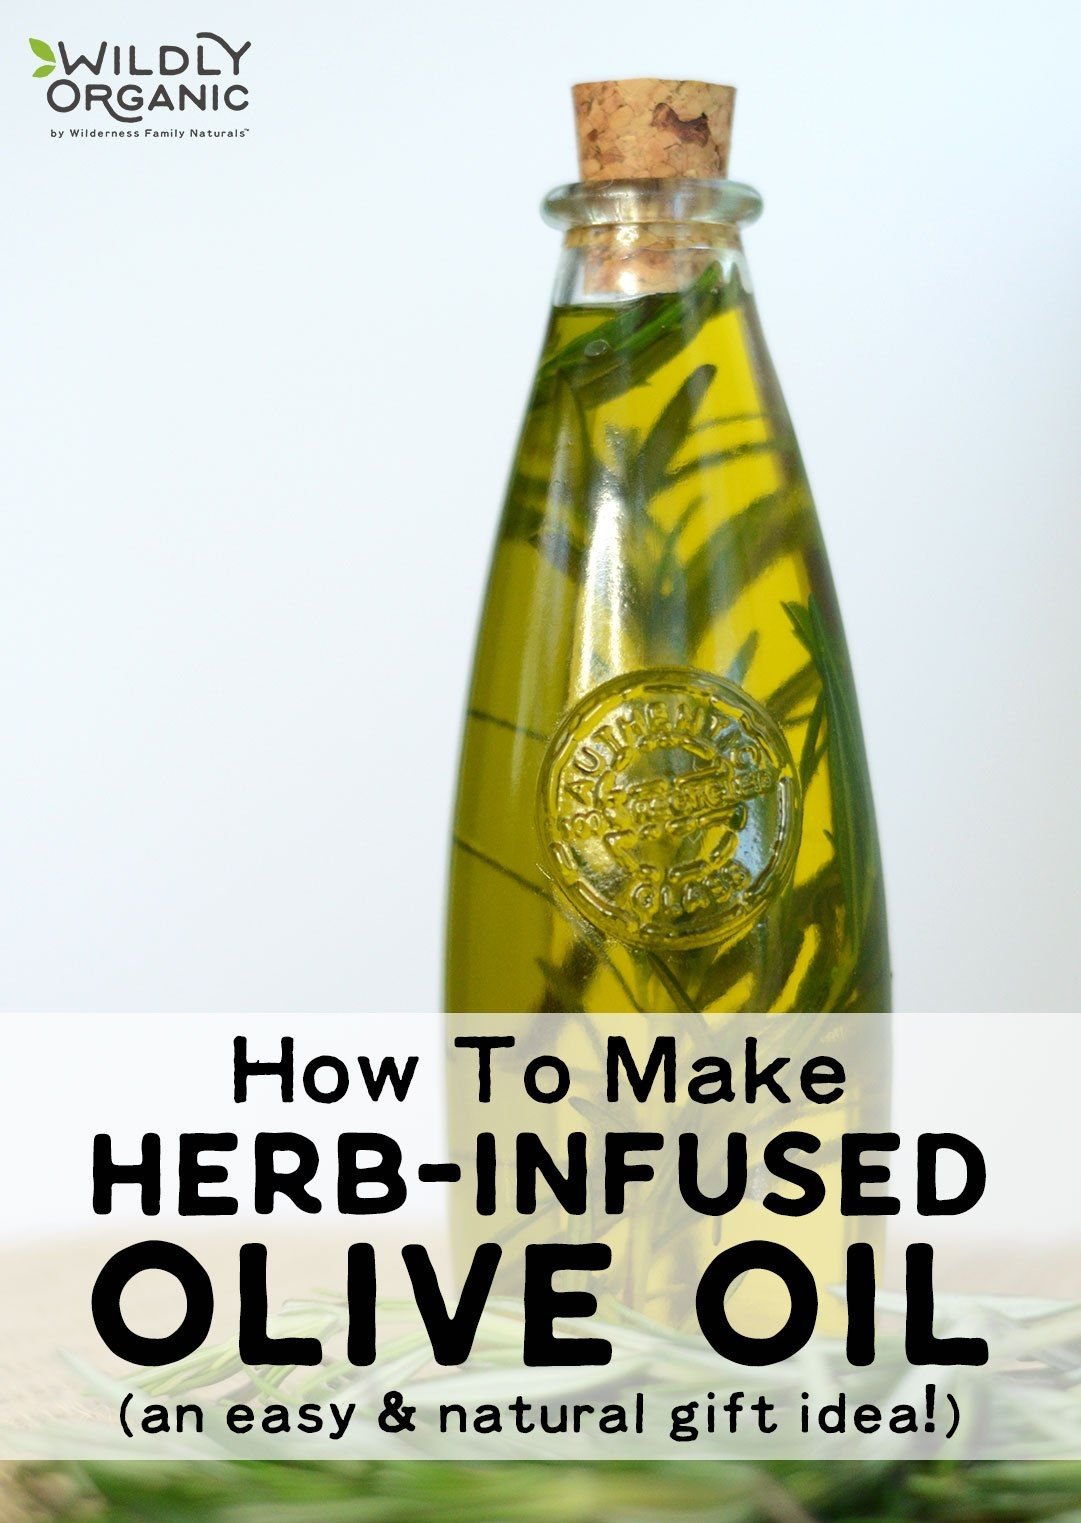 How To Make Herb-Infused Olive Oil (an easy & natural gift idea!) #oliveoils